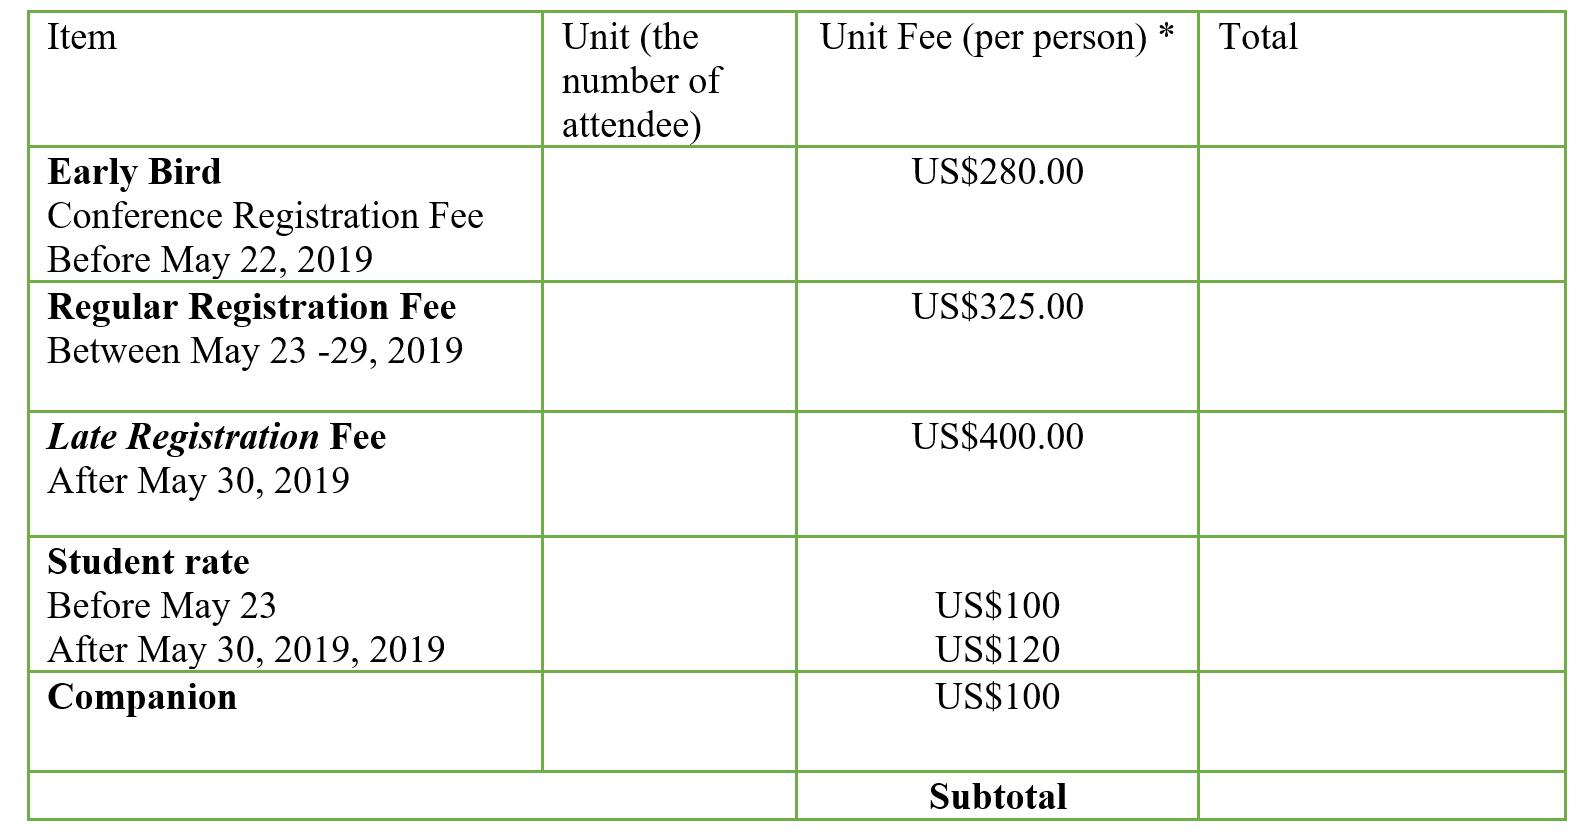 * Fees may be paid in either, US dollars, or Hong Kong dollar with equivalency (about US$1 = HK$7.8).